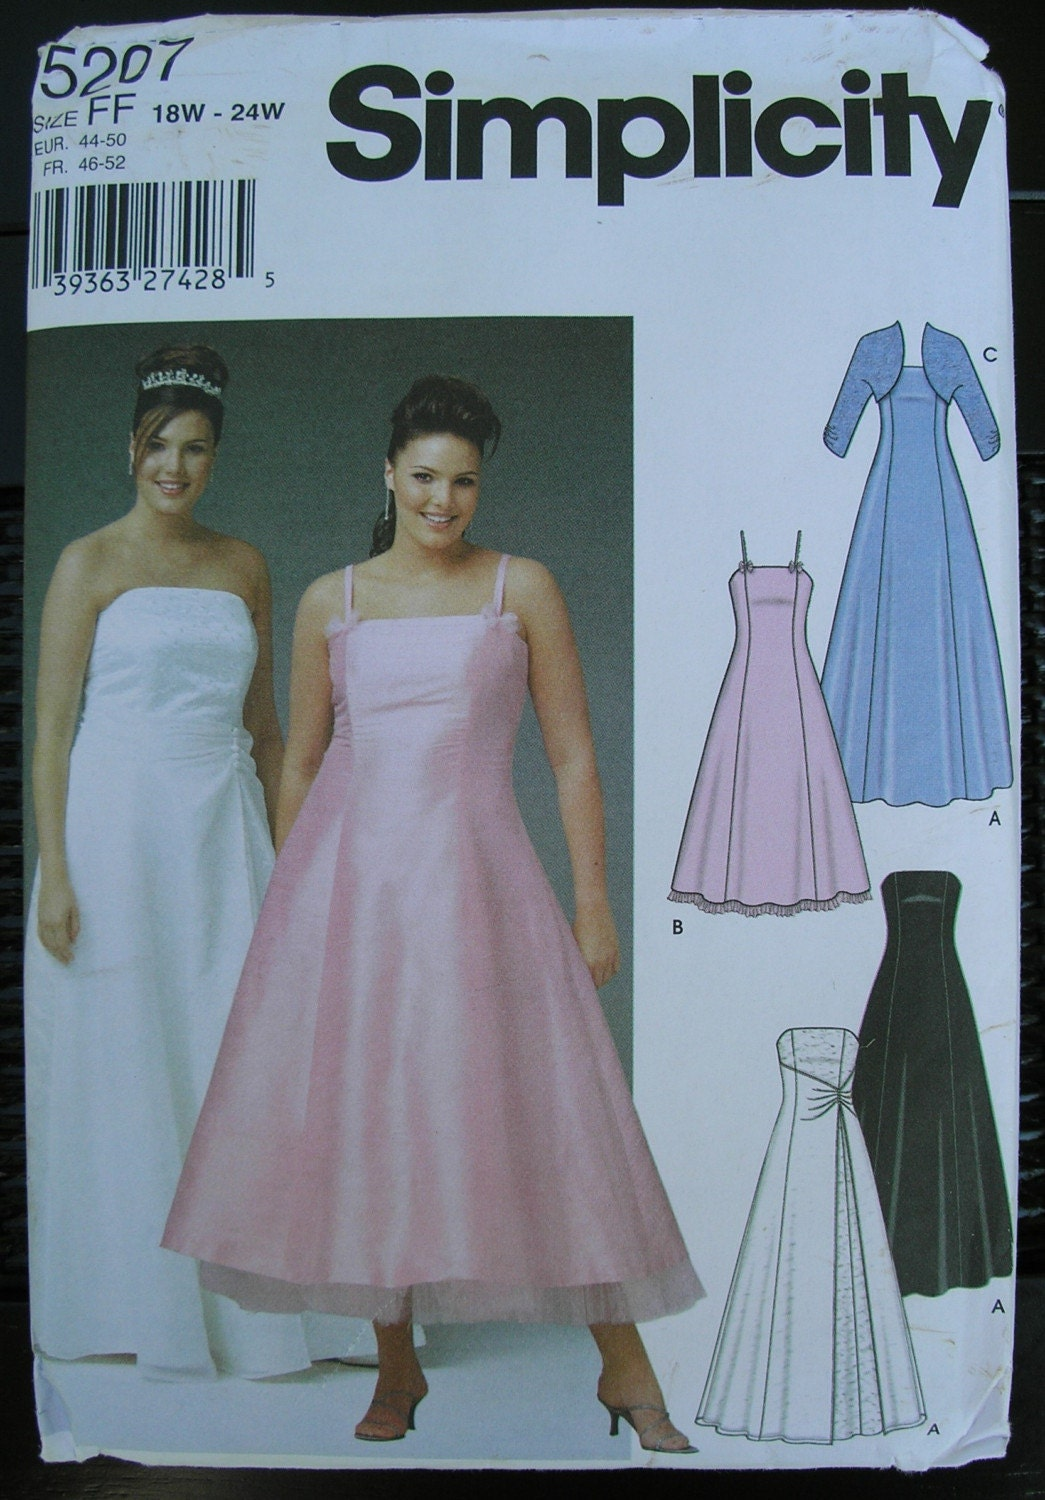 plus size patterns | eBay